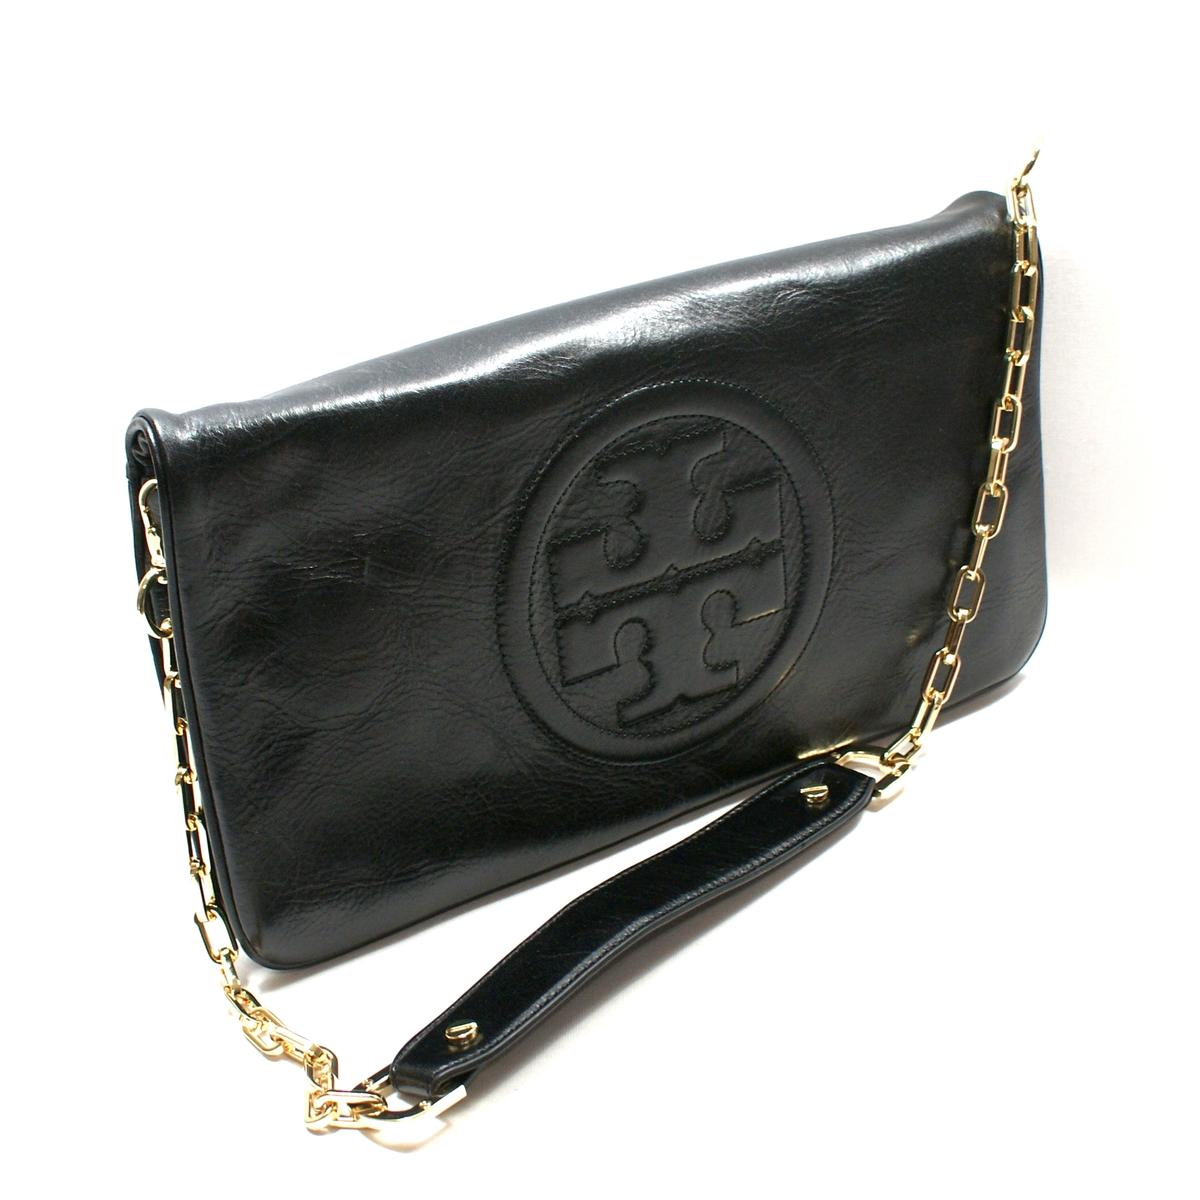 f152c5a97d9d Home · Tory Burch · Black Leather Bombe Reva Clutch  Shoulder Bag. CLICK  THUMBNAIL TO ZOOM. Found ...